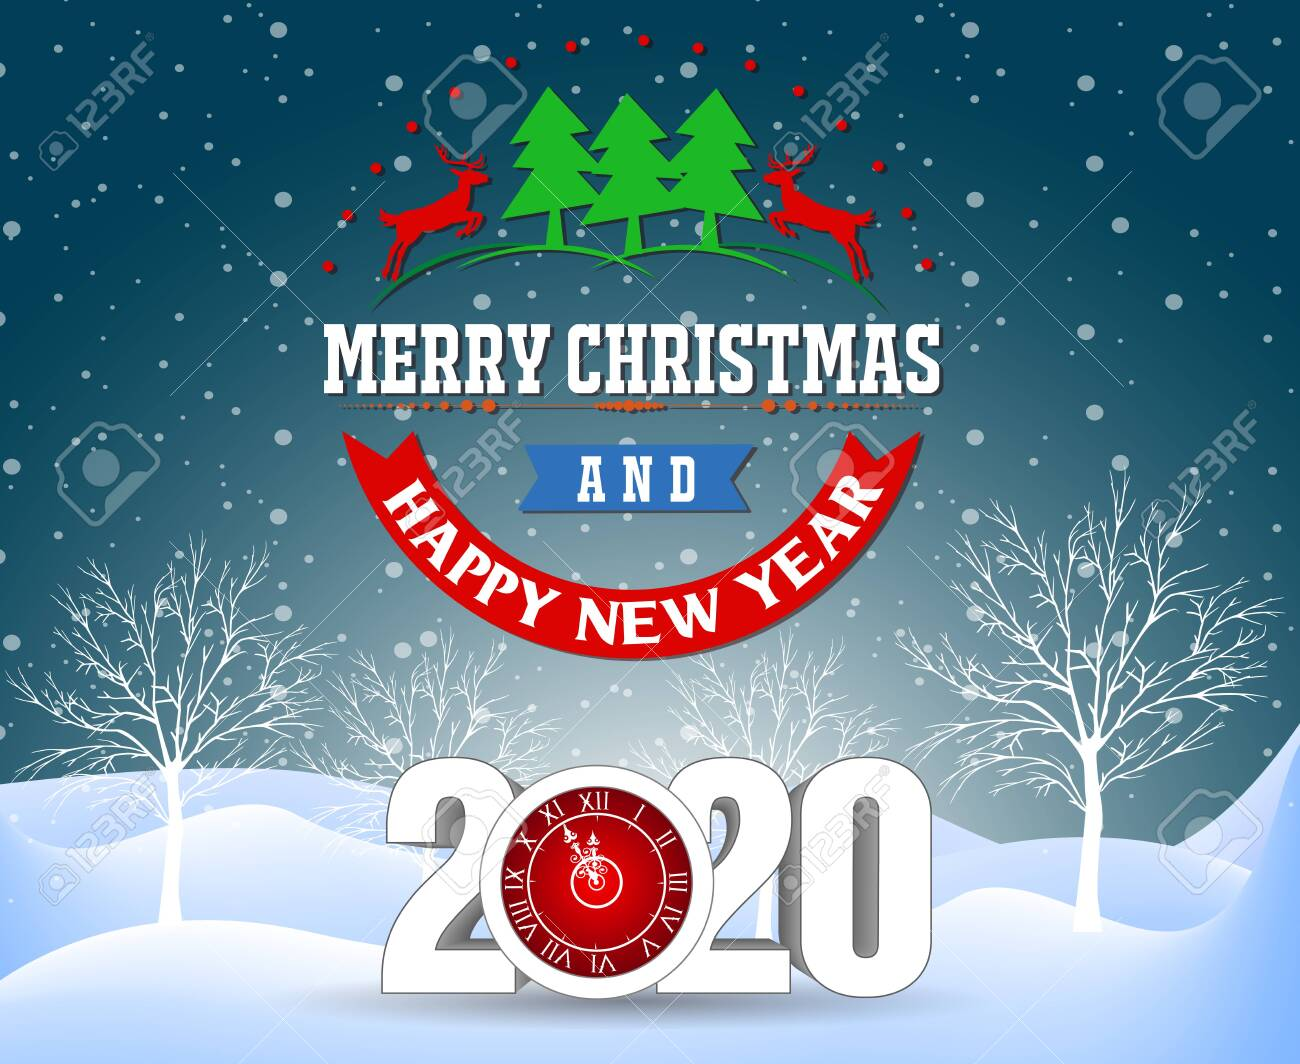 Merry Christmas And Happy New Year 2020 Royalty Cliparts 1300x1064